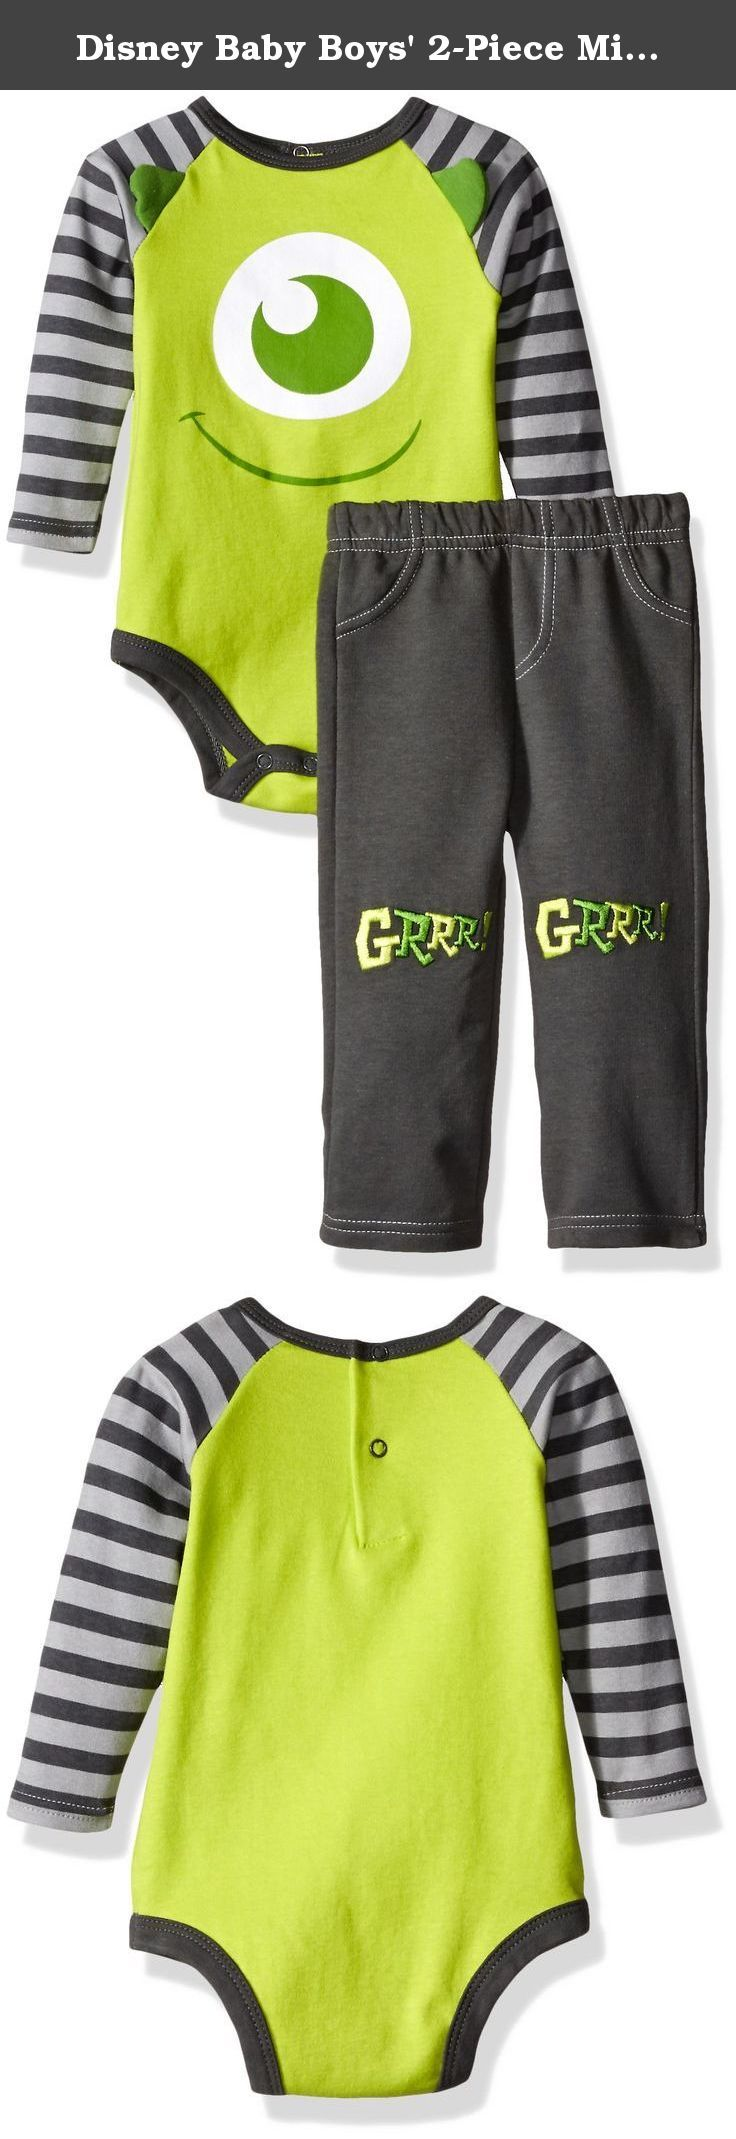 Disney Baby Boys' 2-Piece Mike from Monsters Inc. Pant Set with 3d Knee Patches, Green, 24 Months. 2 piece mike from monsters Inc. top with 3D ear applique and pant with knee appliques.